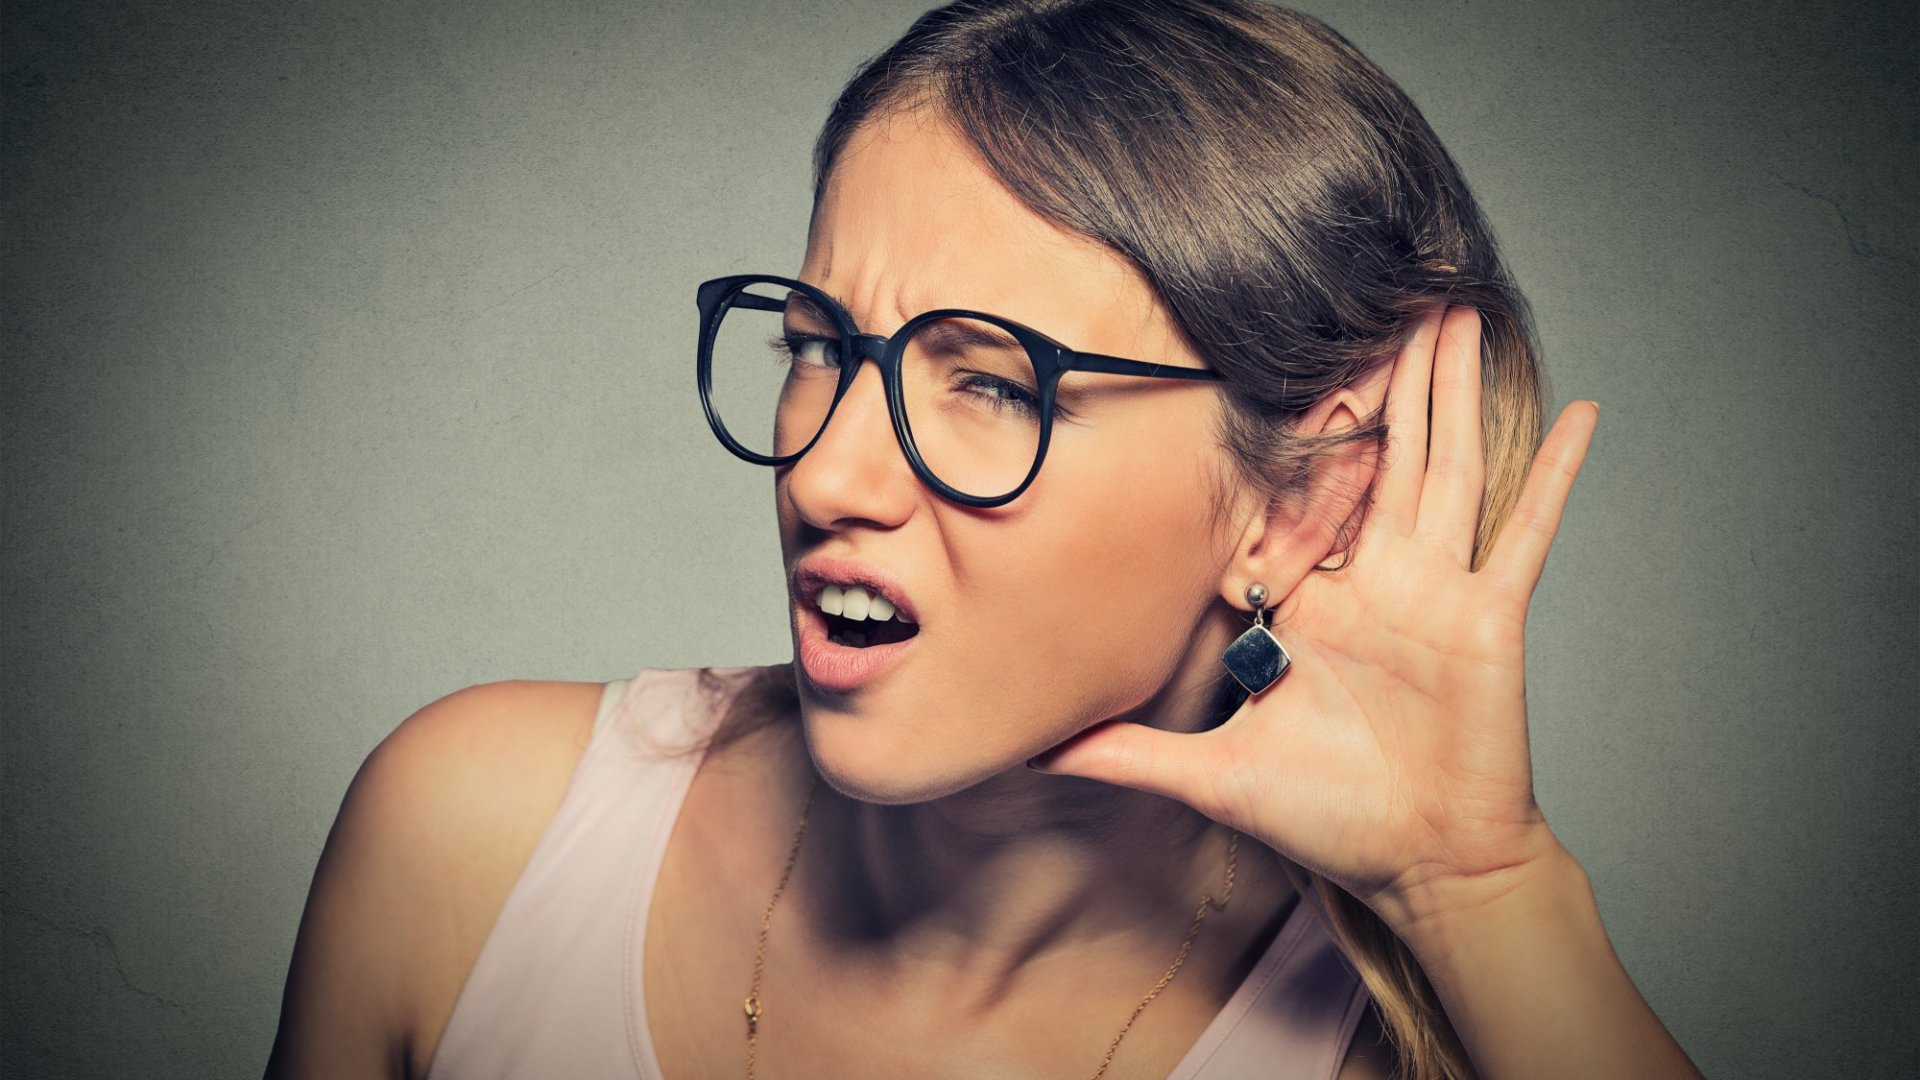 Think Twice About the Customer Always Being Right: 6 Common Pieces of Advice That You Should Ignore